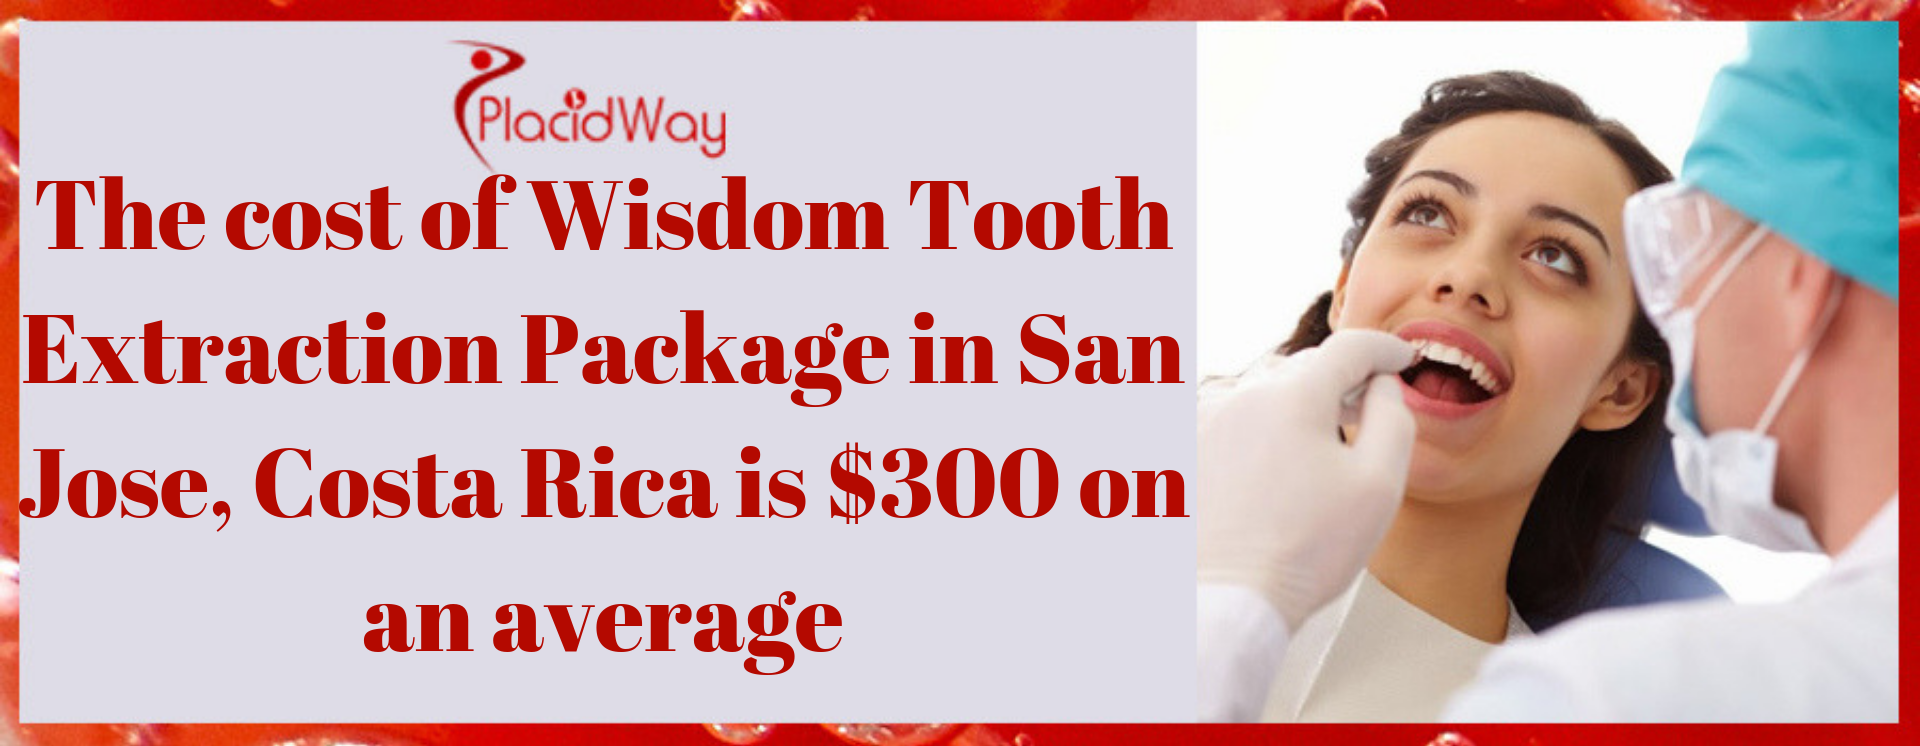 The cost of Wisdom Tooth Extraction Package in San Jose, Costa Rica is $300 on an average